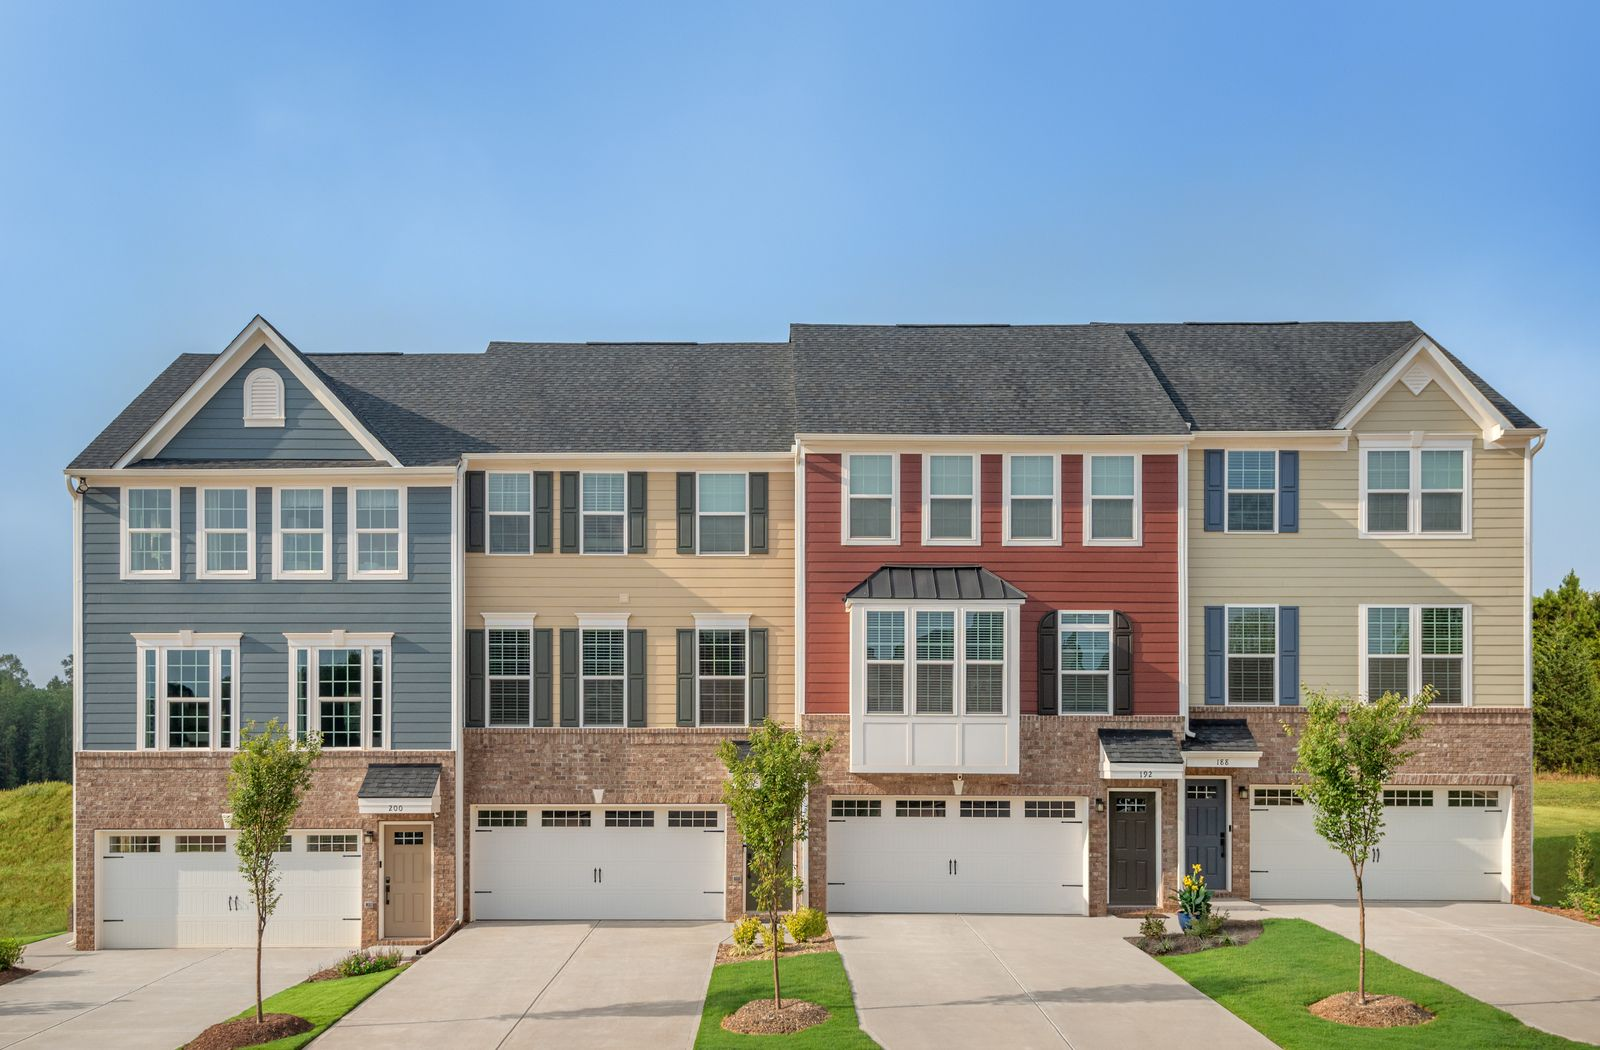 Welcome to McCullers Walk Townes!:Offering stunning floorplans, exciting amenities, and convenience to downtown Raleigh.Schedule a visit today!